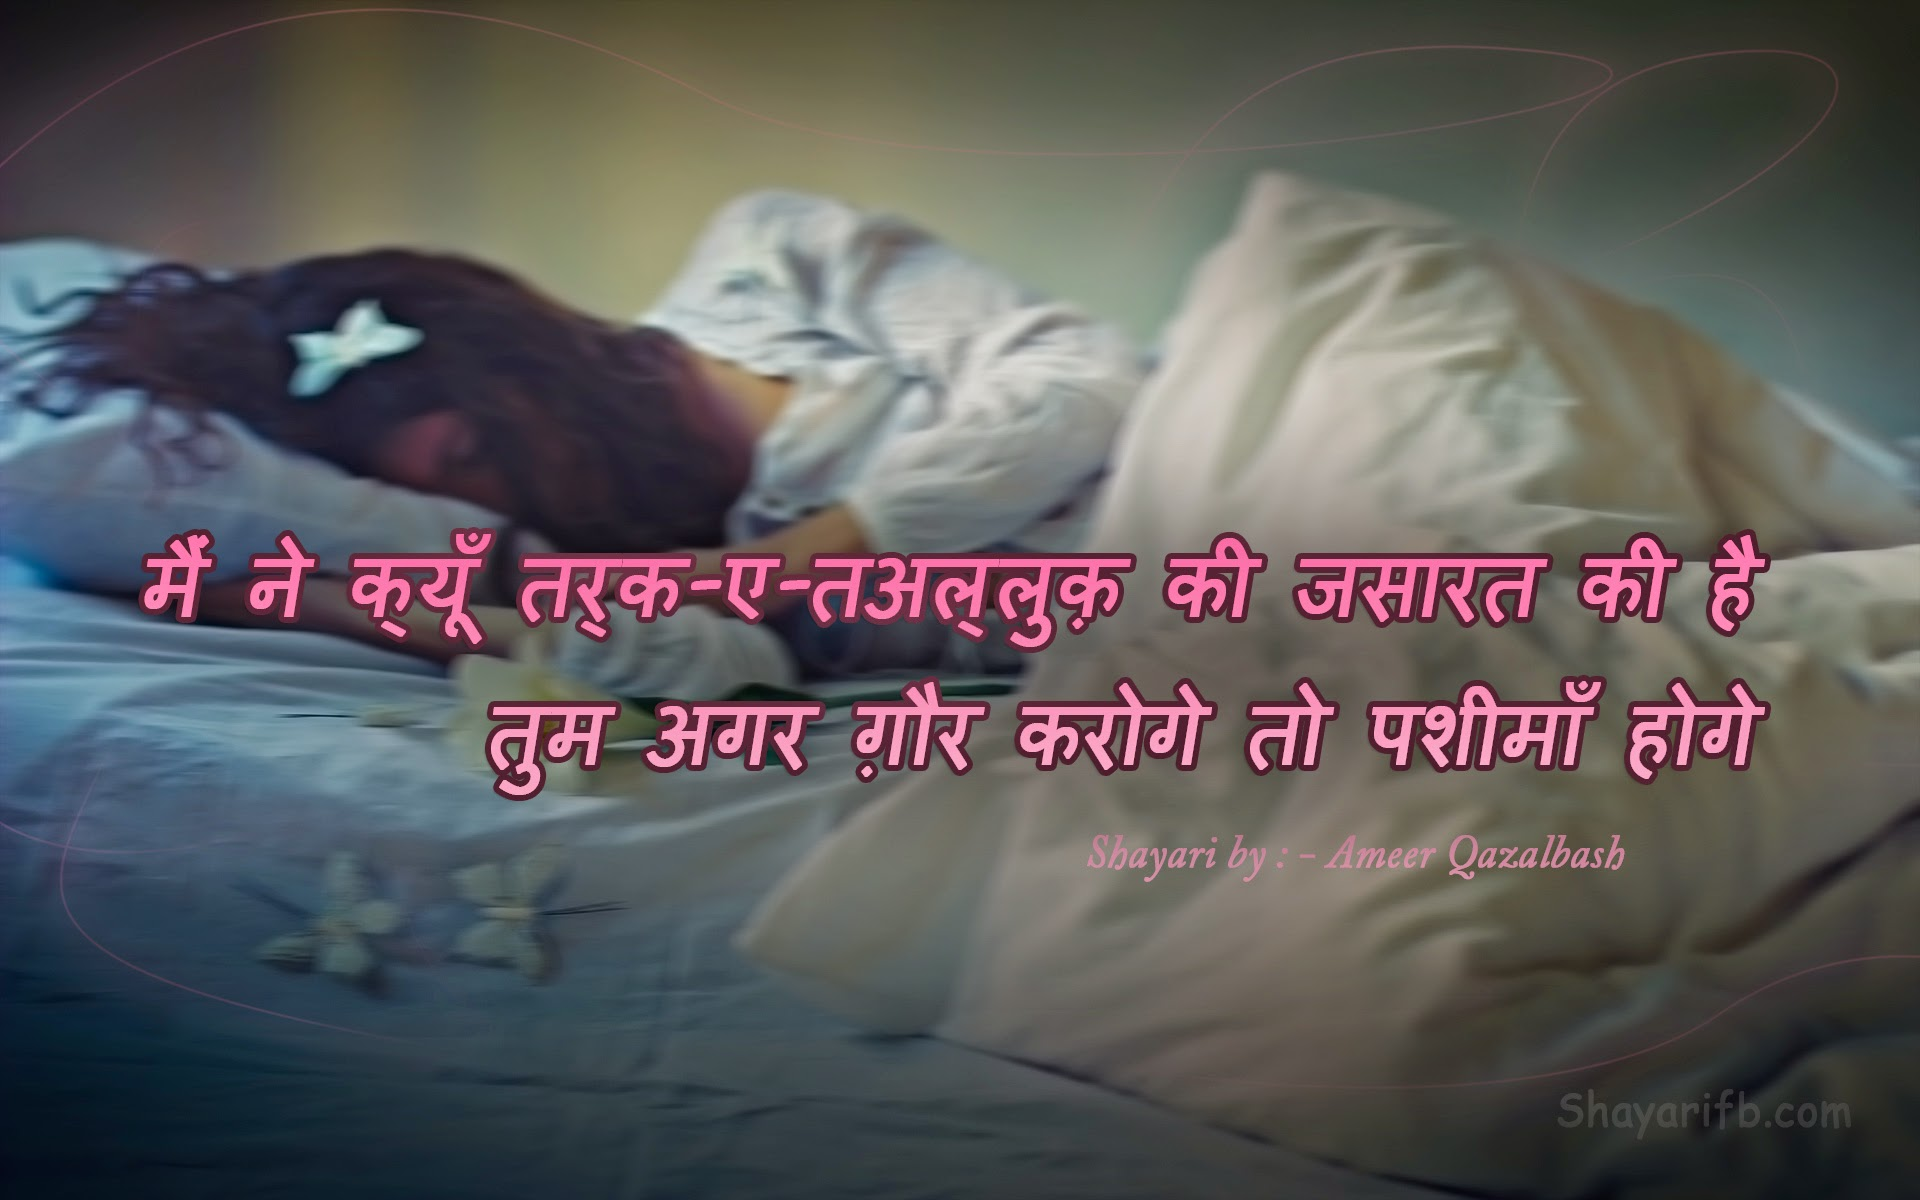 Love shayari wallpaper shayari in HindiLove Shayari and ...